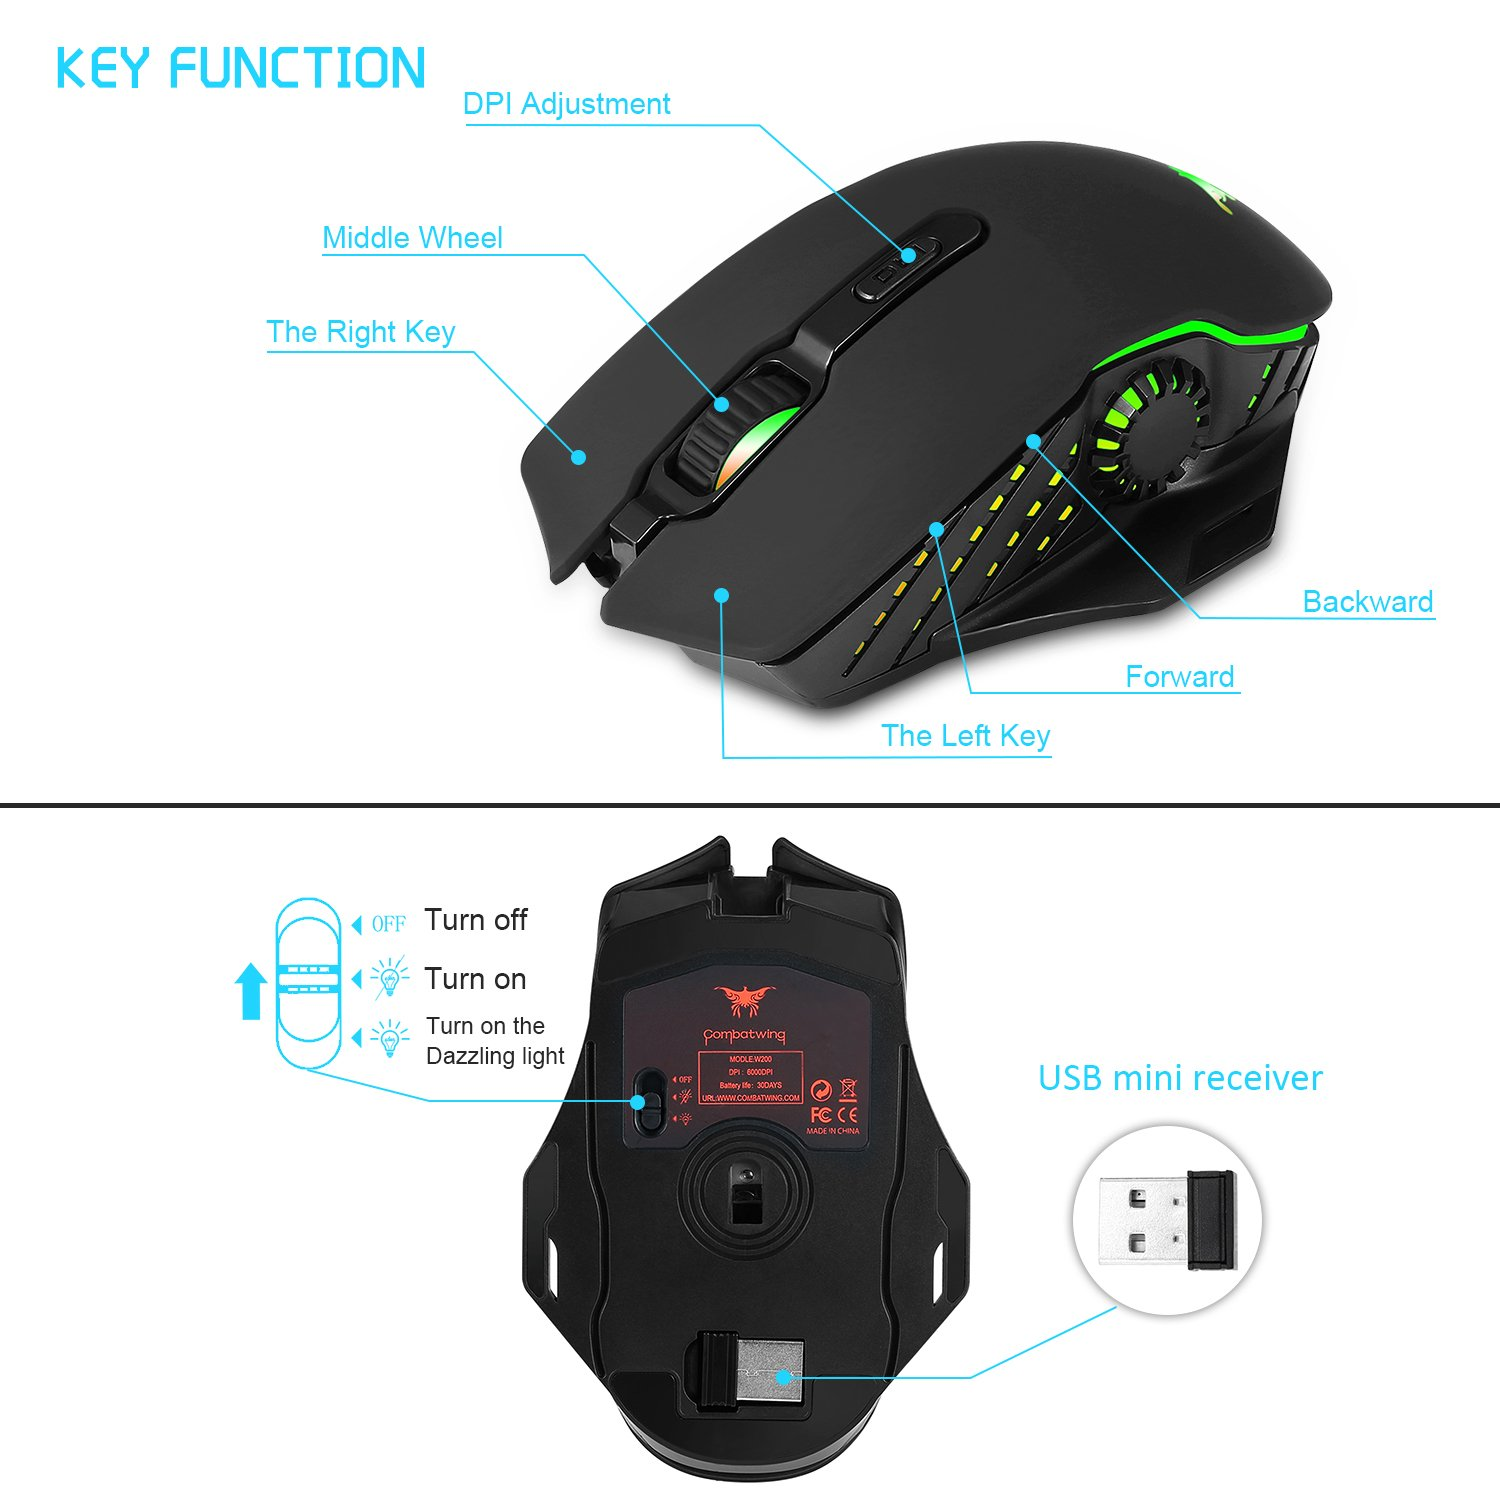 JinSun Rechargeable Laptop Wireless Gaming Mouse 2 in 1 Wireless & Wired Optical Mice with USB, 5 Buttons, 6 Colors Breathing Lights for PC and Mac, 6 Adjustable DPI Levels for Laptop Mac Pro and PC by JinSun (Image #1)